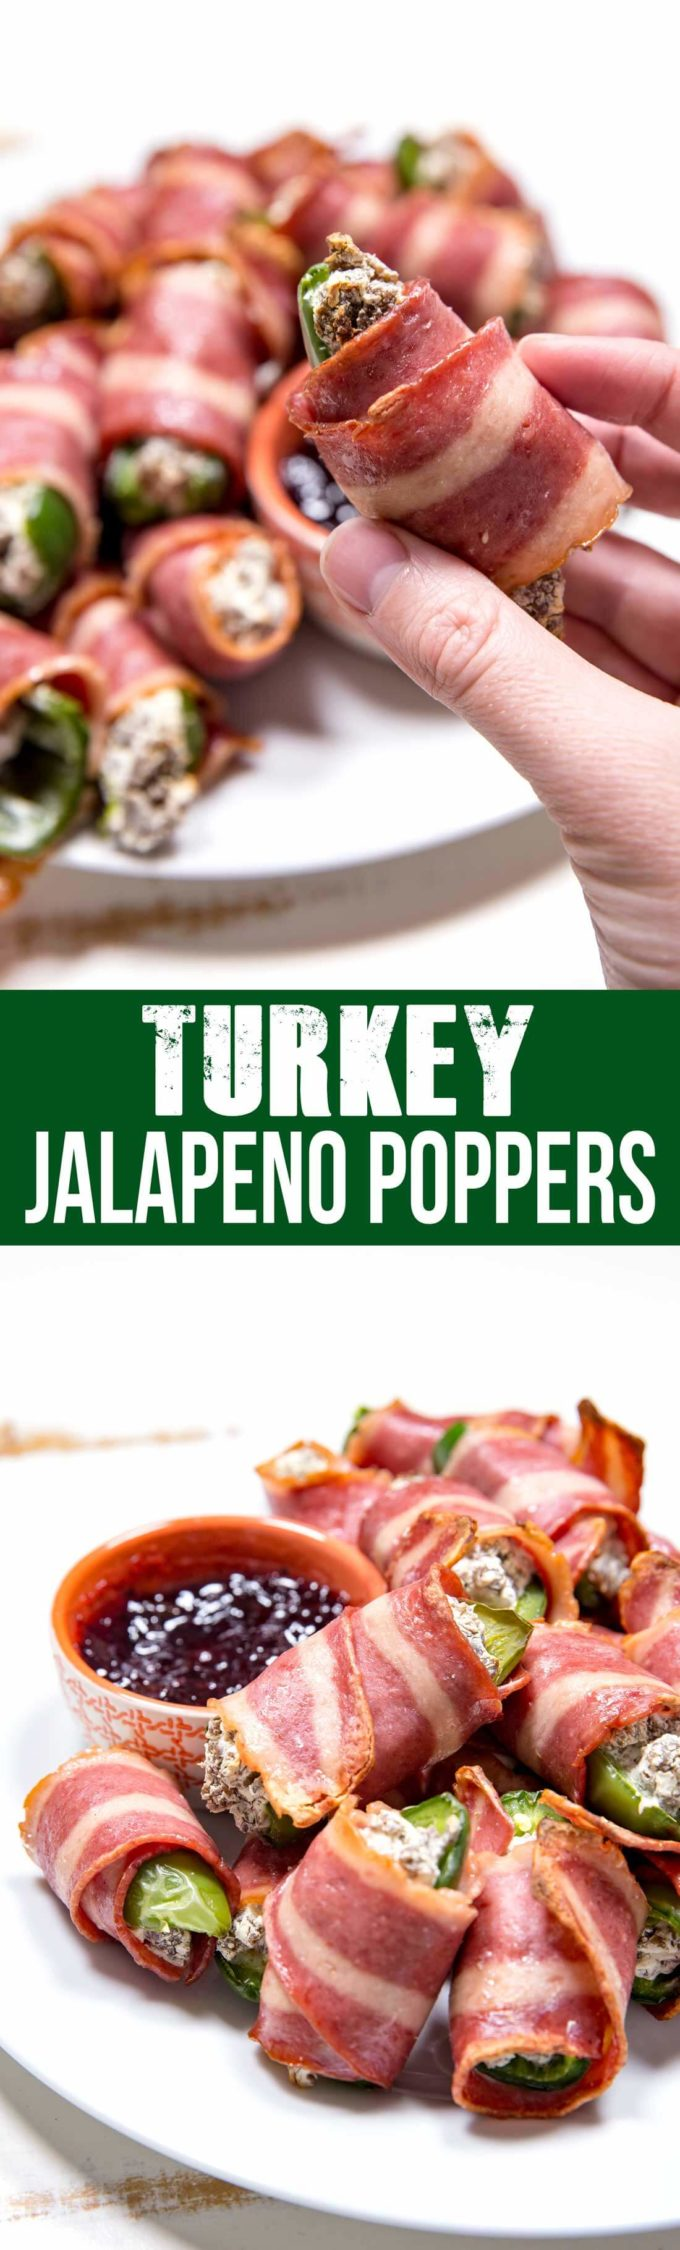 Turkey Jalapeno Poppers are easy, delicious, and budget friendly